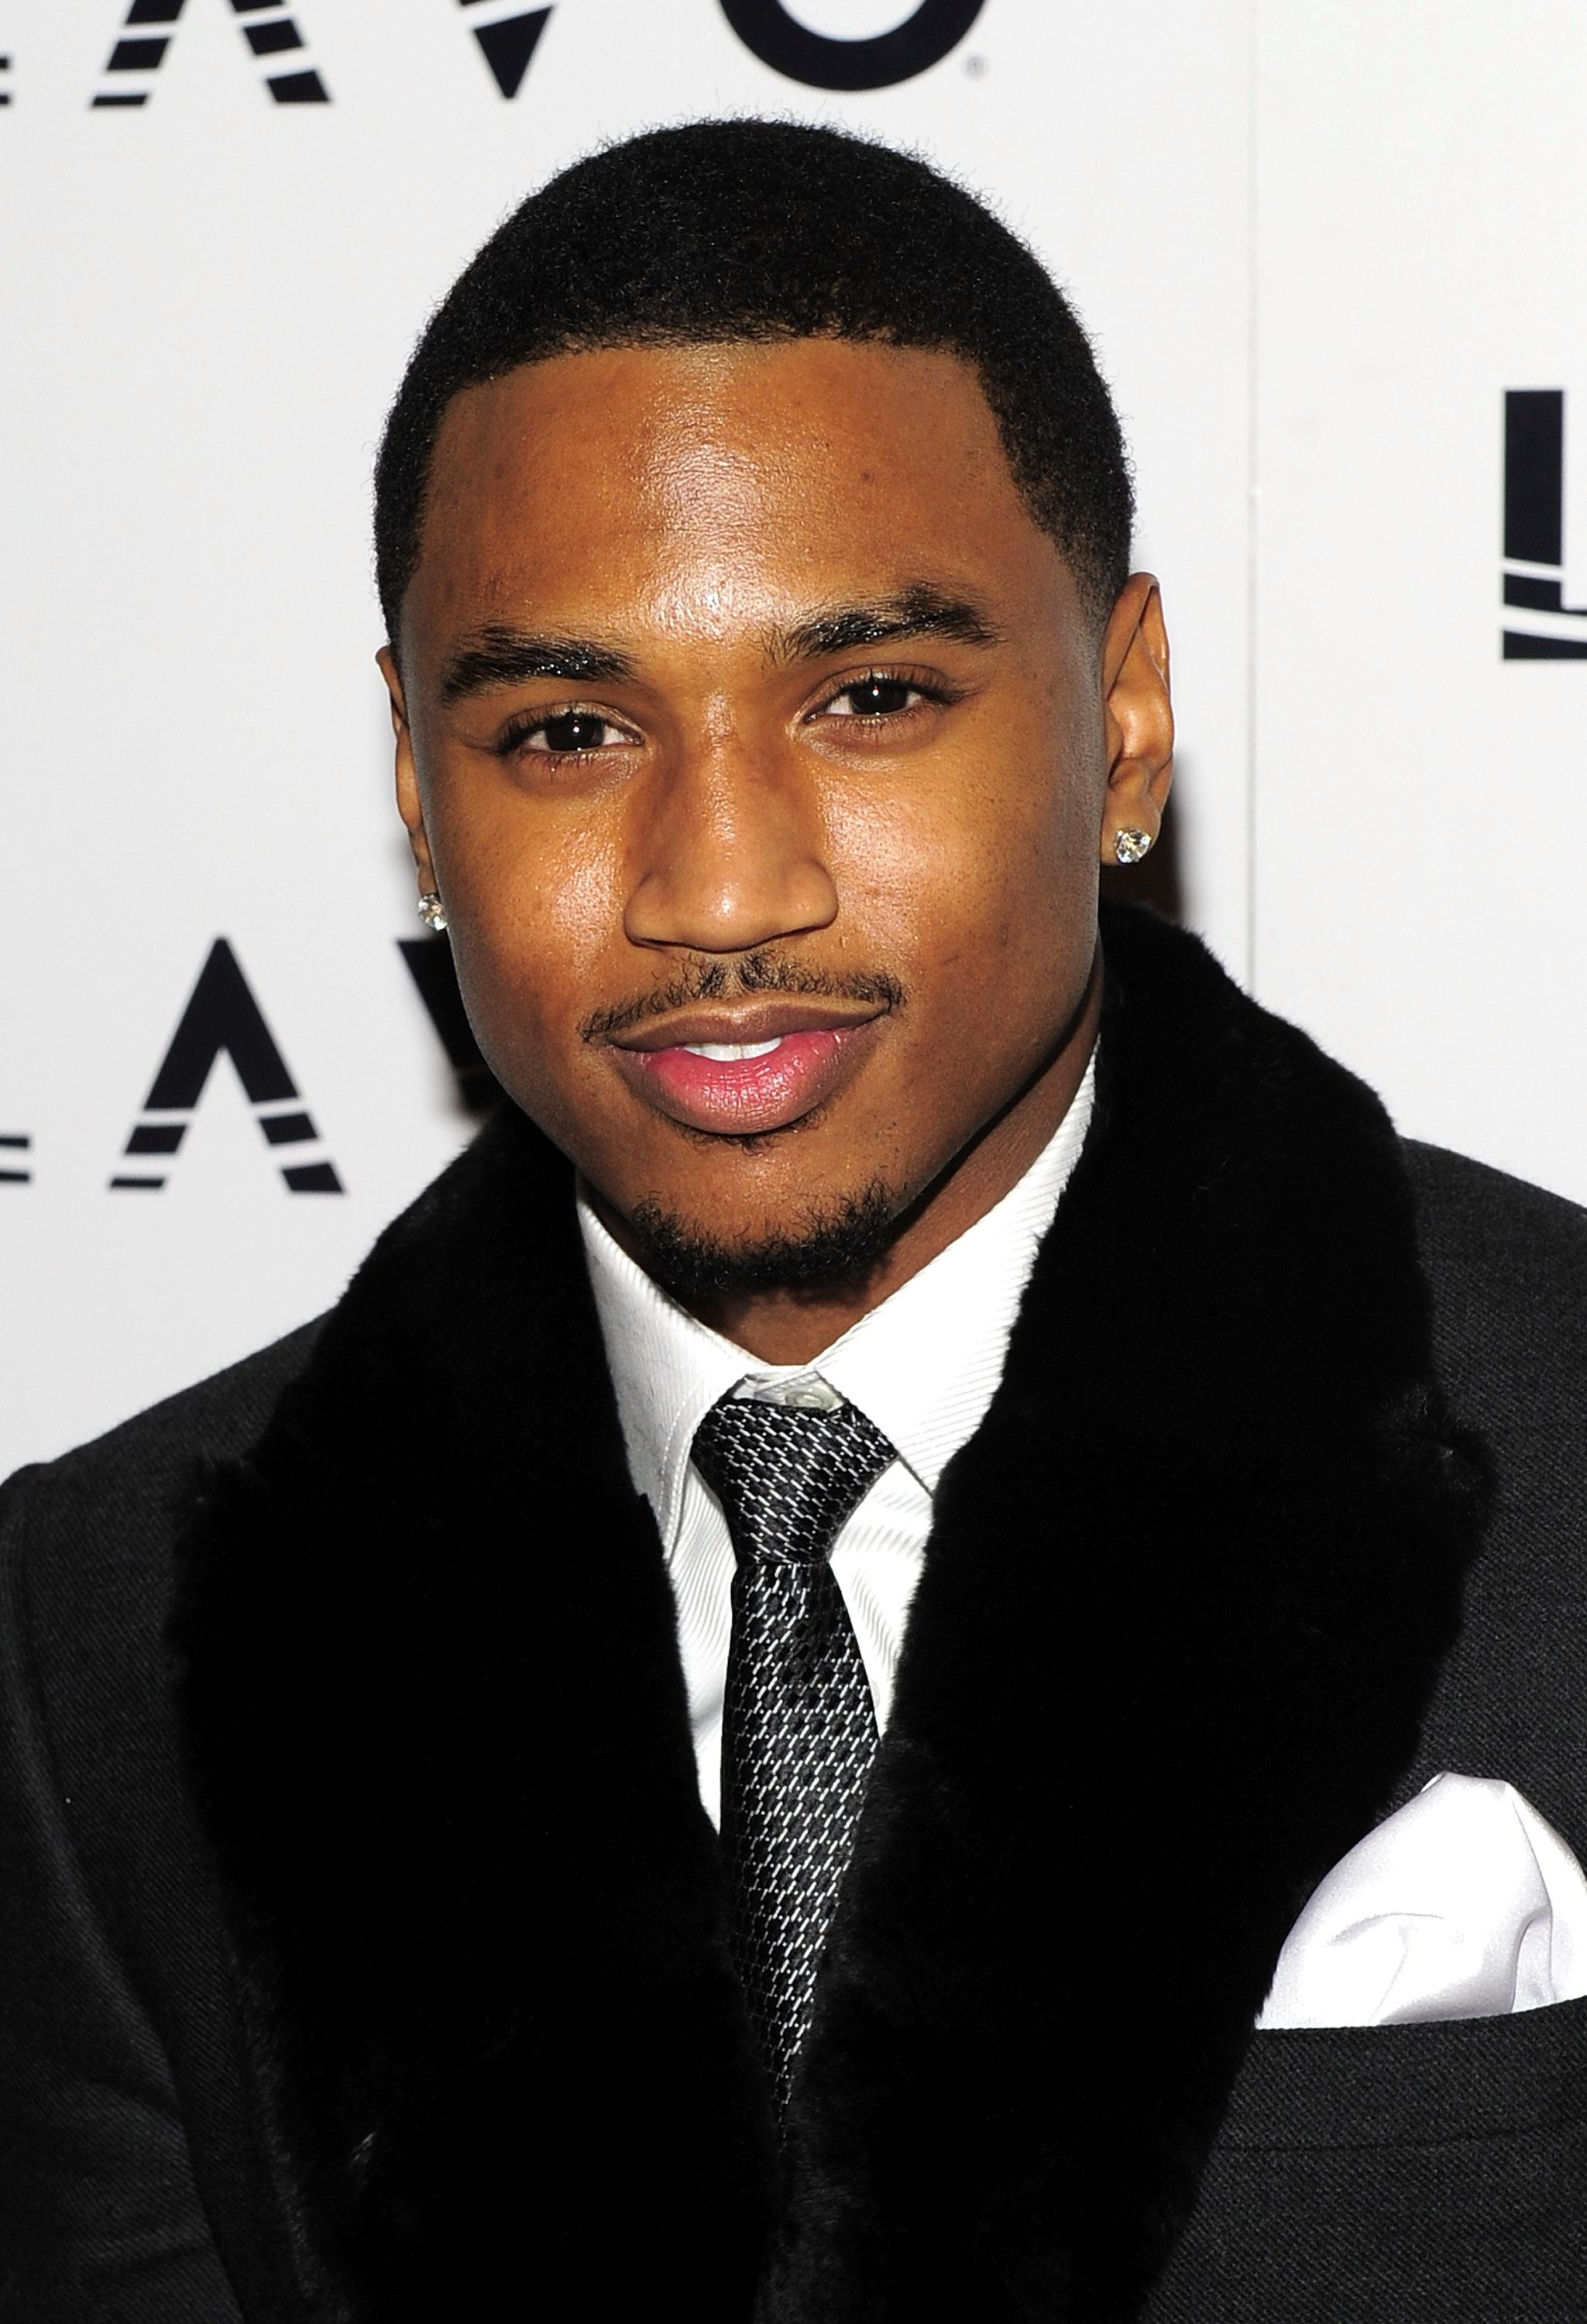 Trey Songz Celebrates His Birthday At Lavo Nightclub